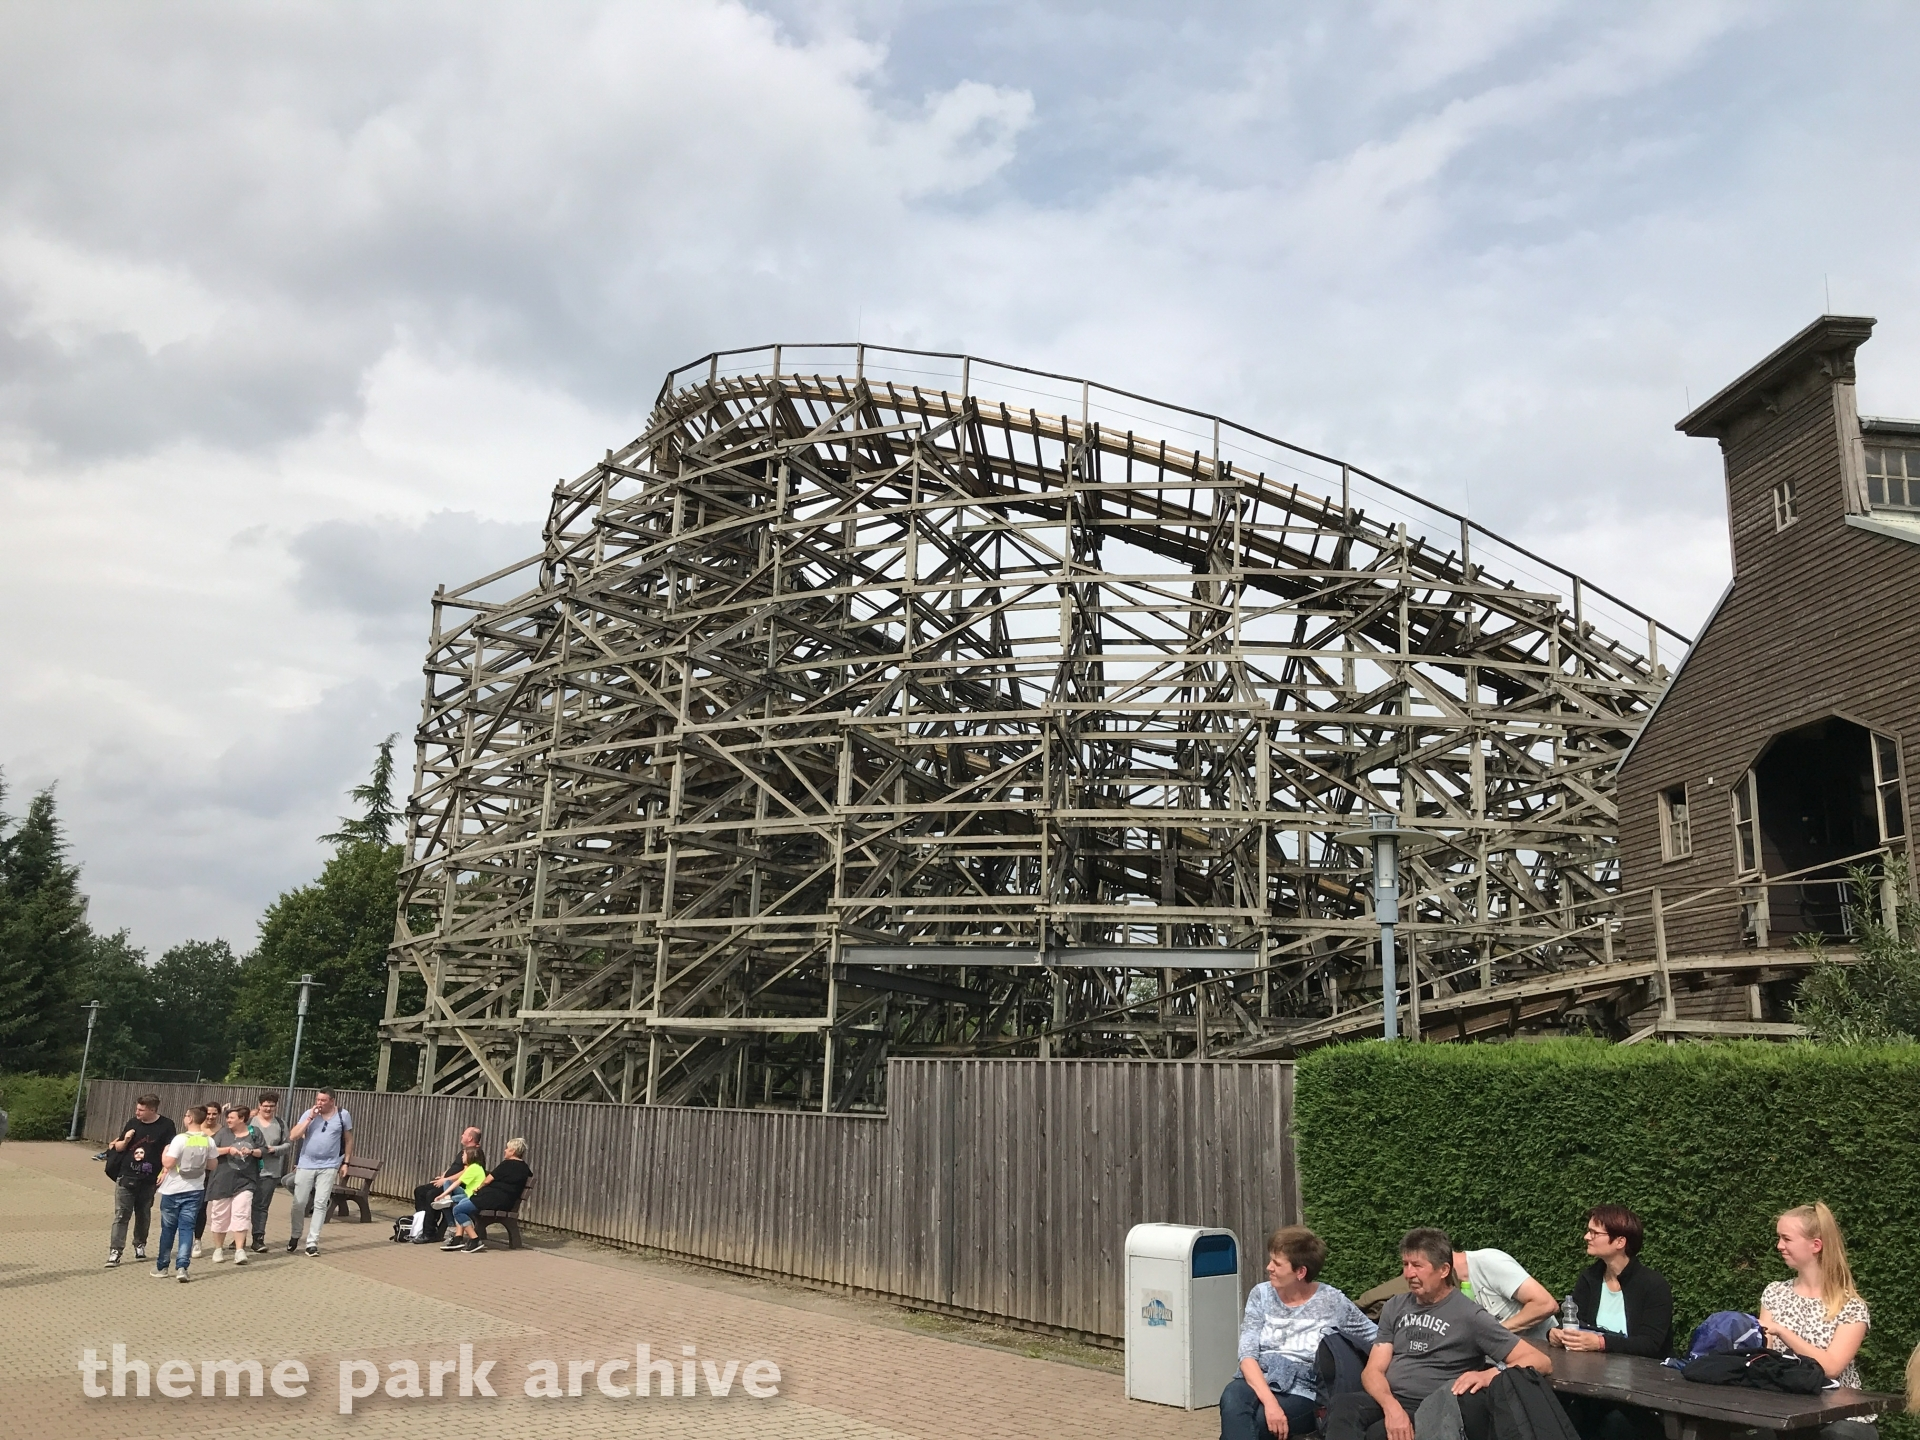 The Bandit at Movie Park Germany